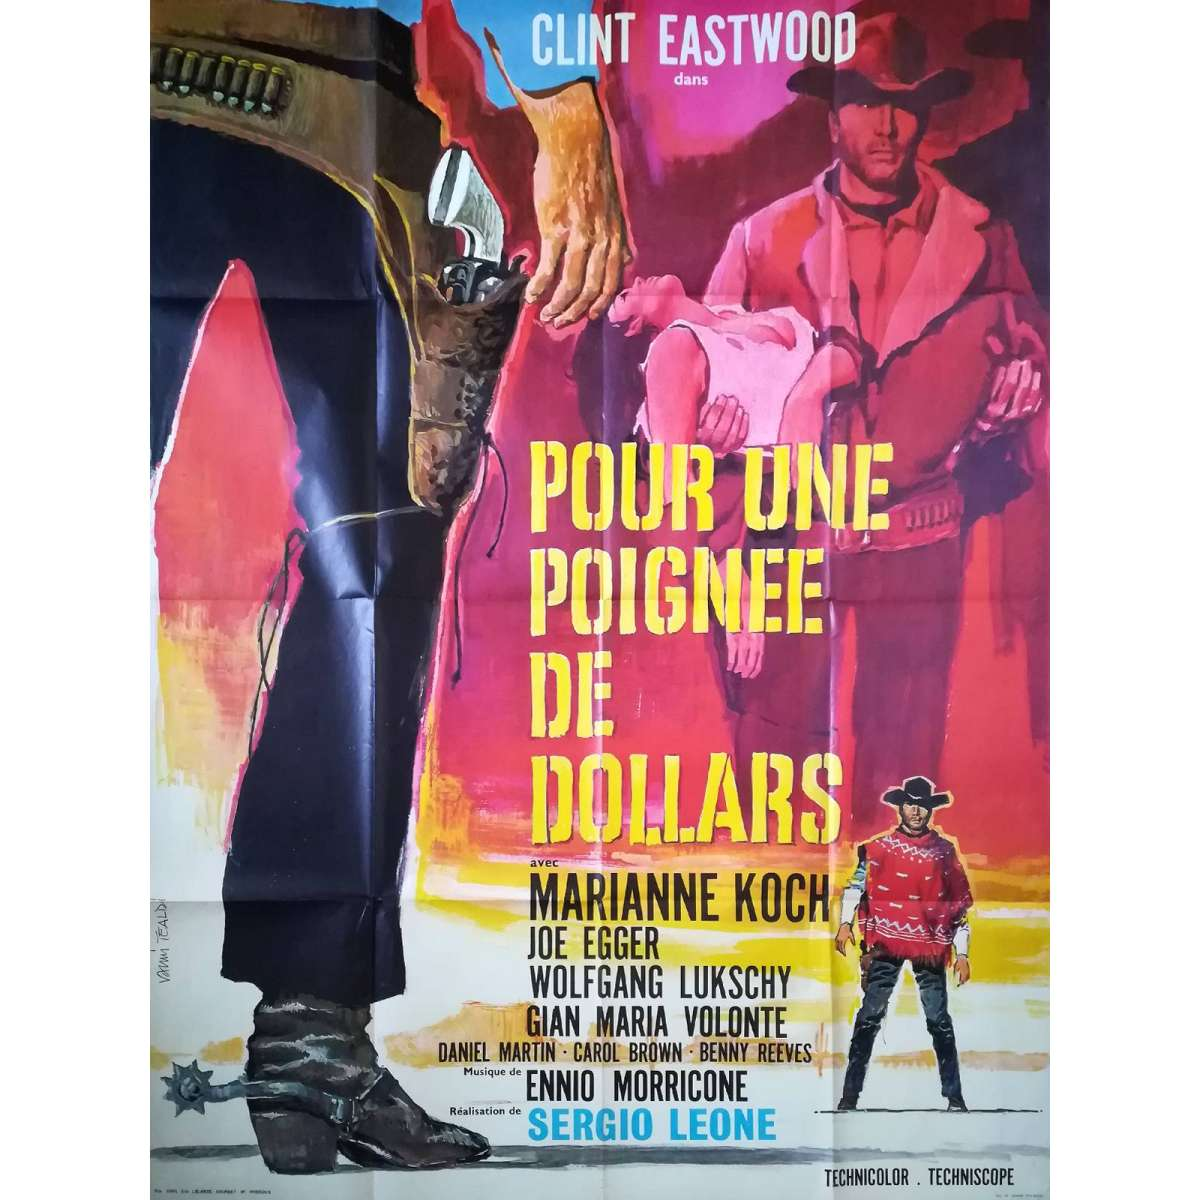 FISTFUL OF DOLLARS French Movie Poster - 47x63 in  R70 - Sergio Leone Clint  Eastwood